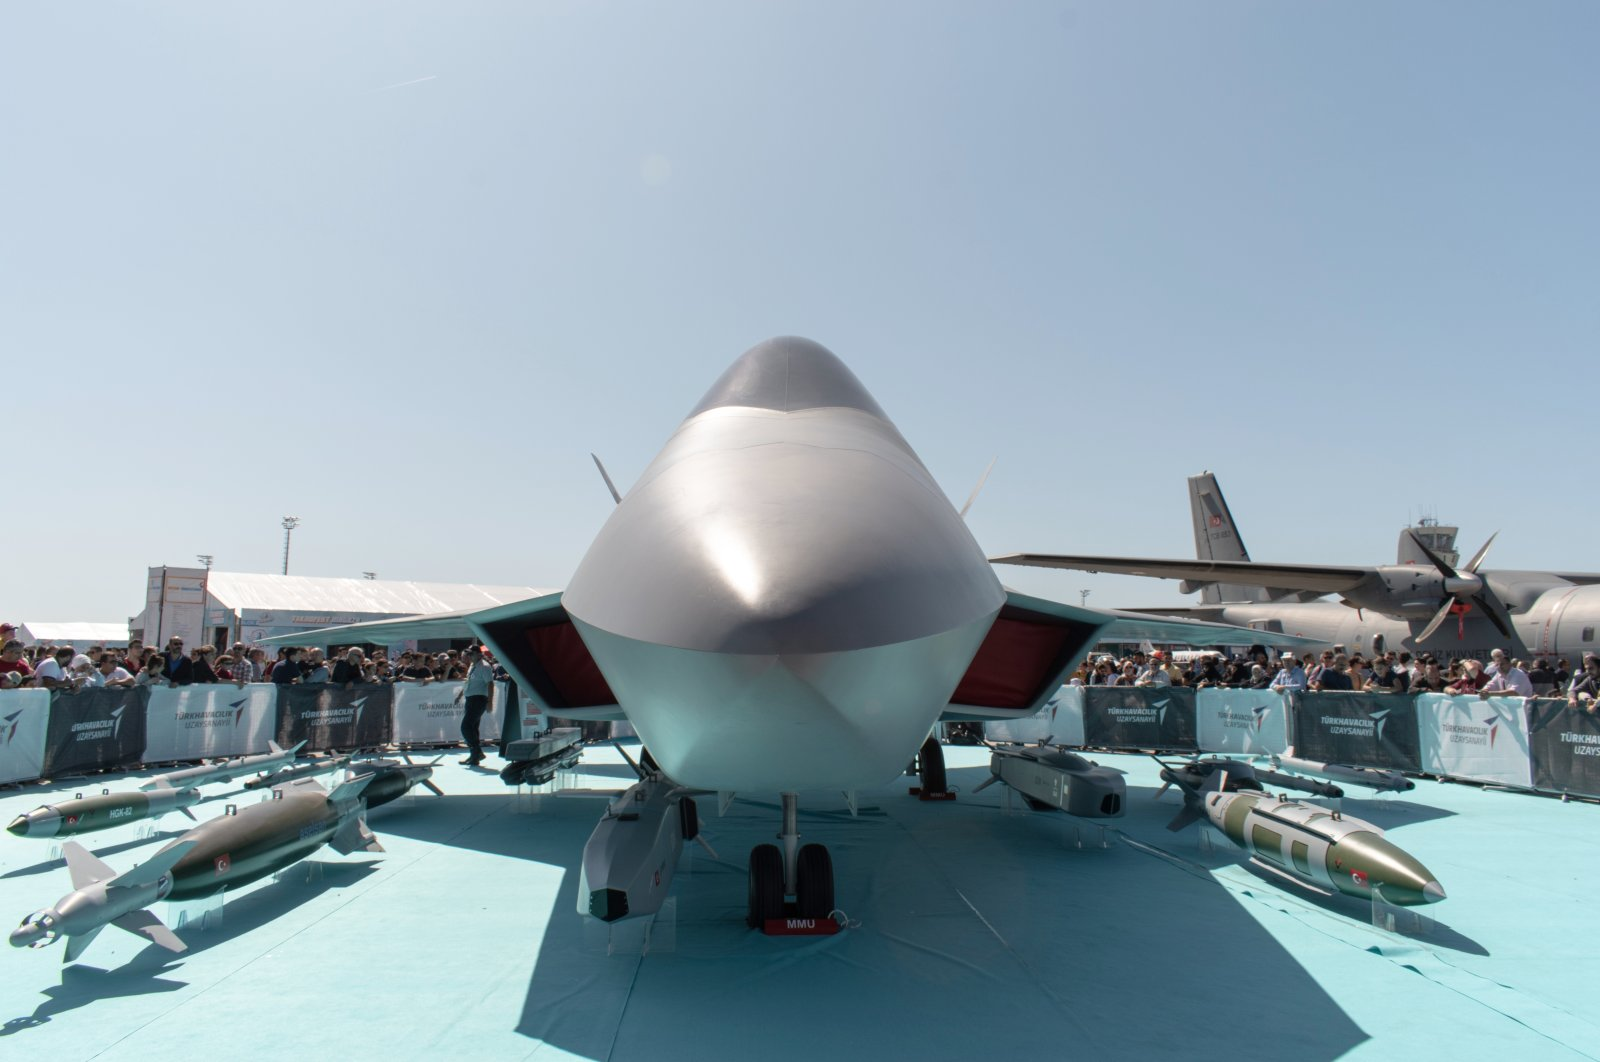 The TF-X National Combat Aircraft (MMU) of TAI showcased during Teknofest held between Sept. 17-22, 2019, at Atatürk Airport, Istanbul, Turkey. (Shutterstock Photo)